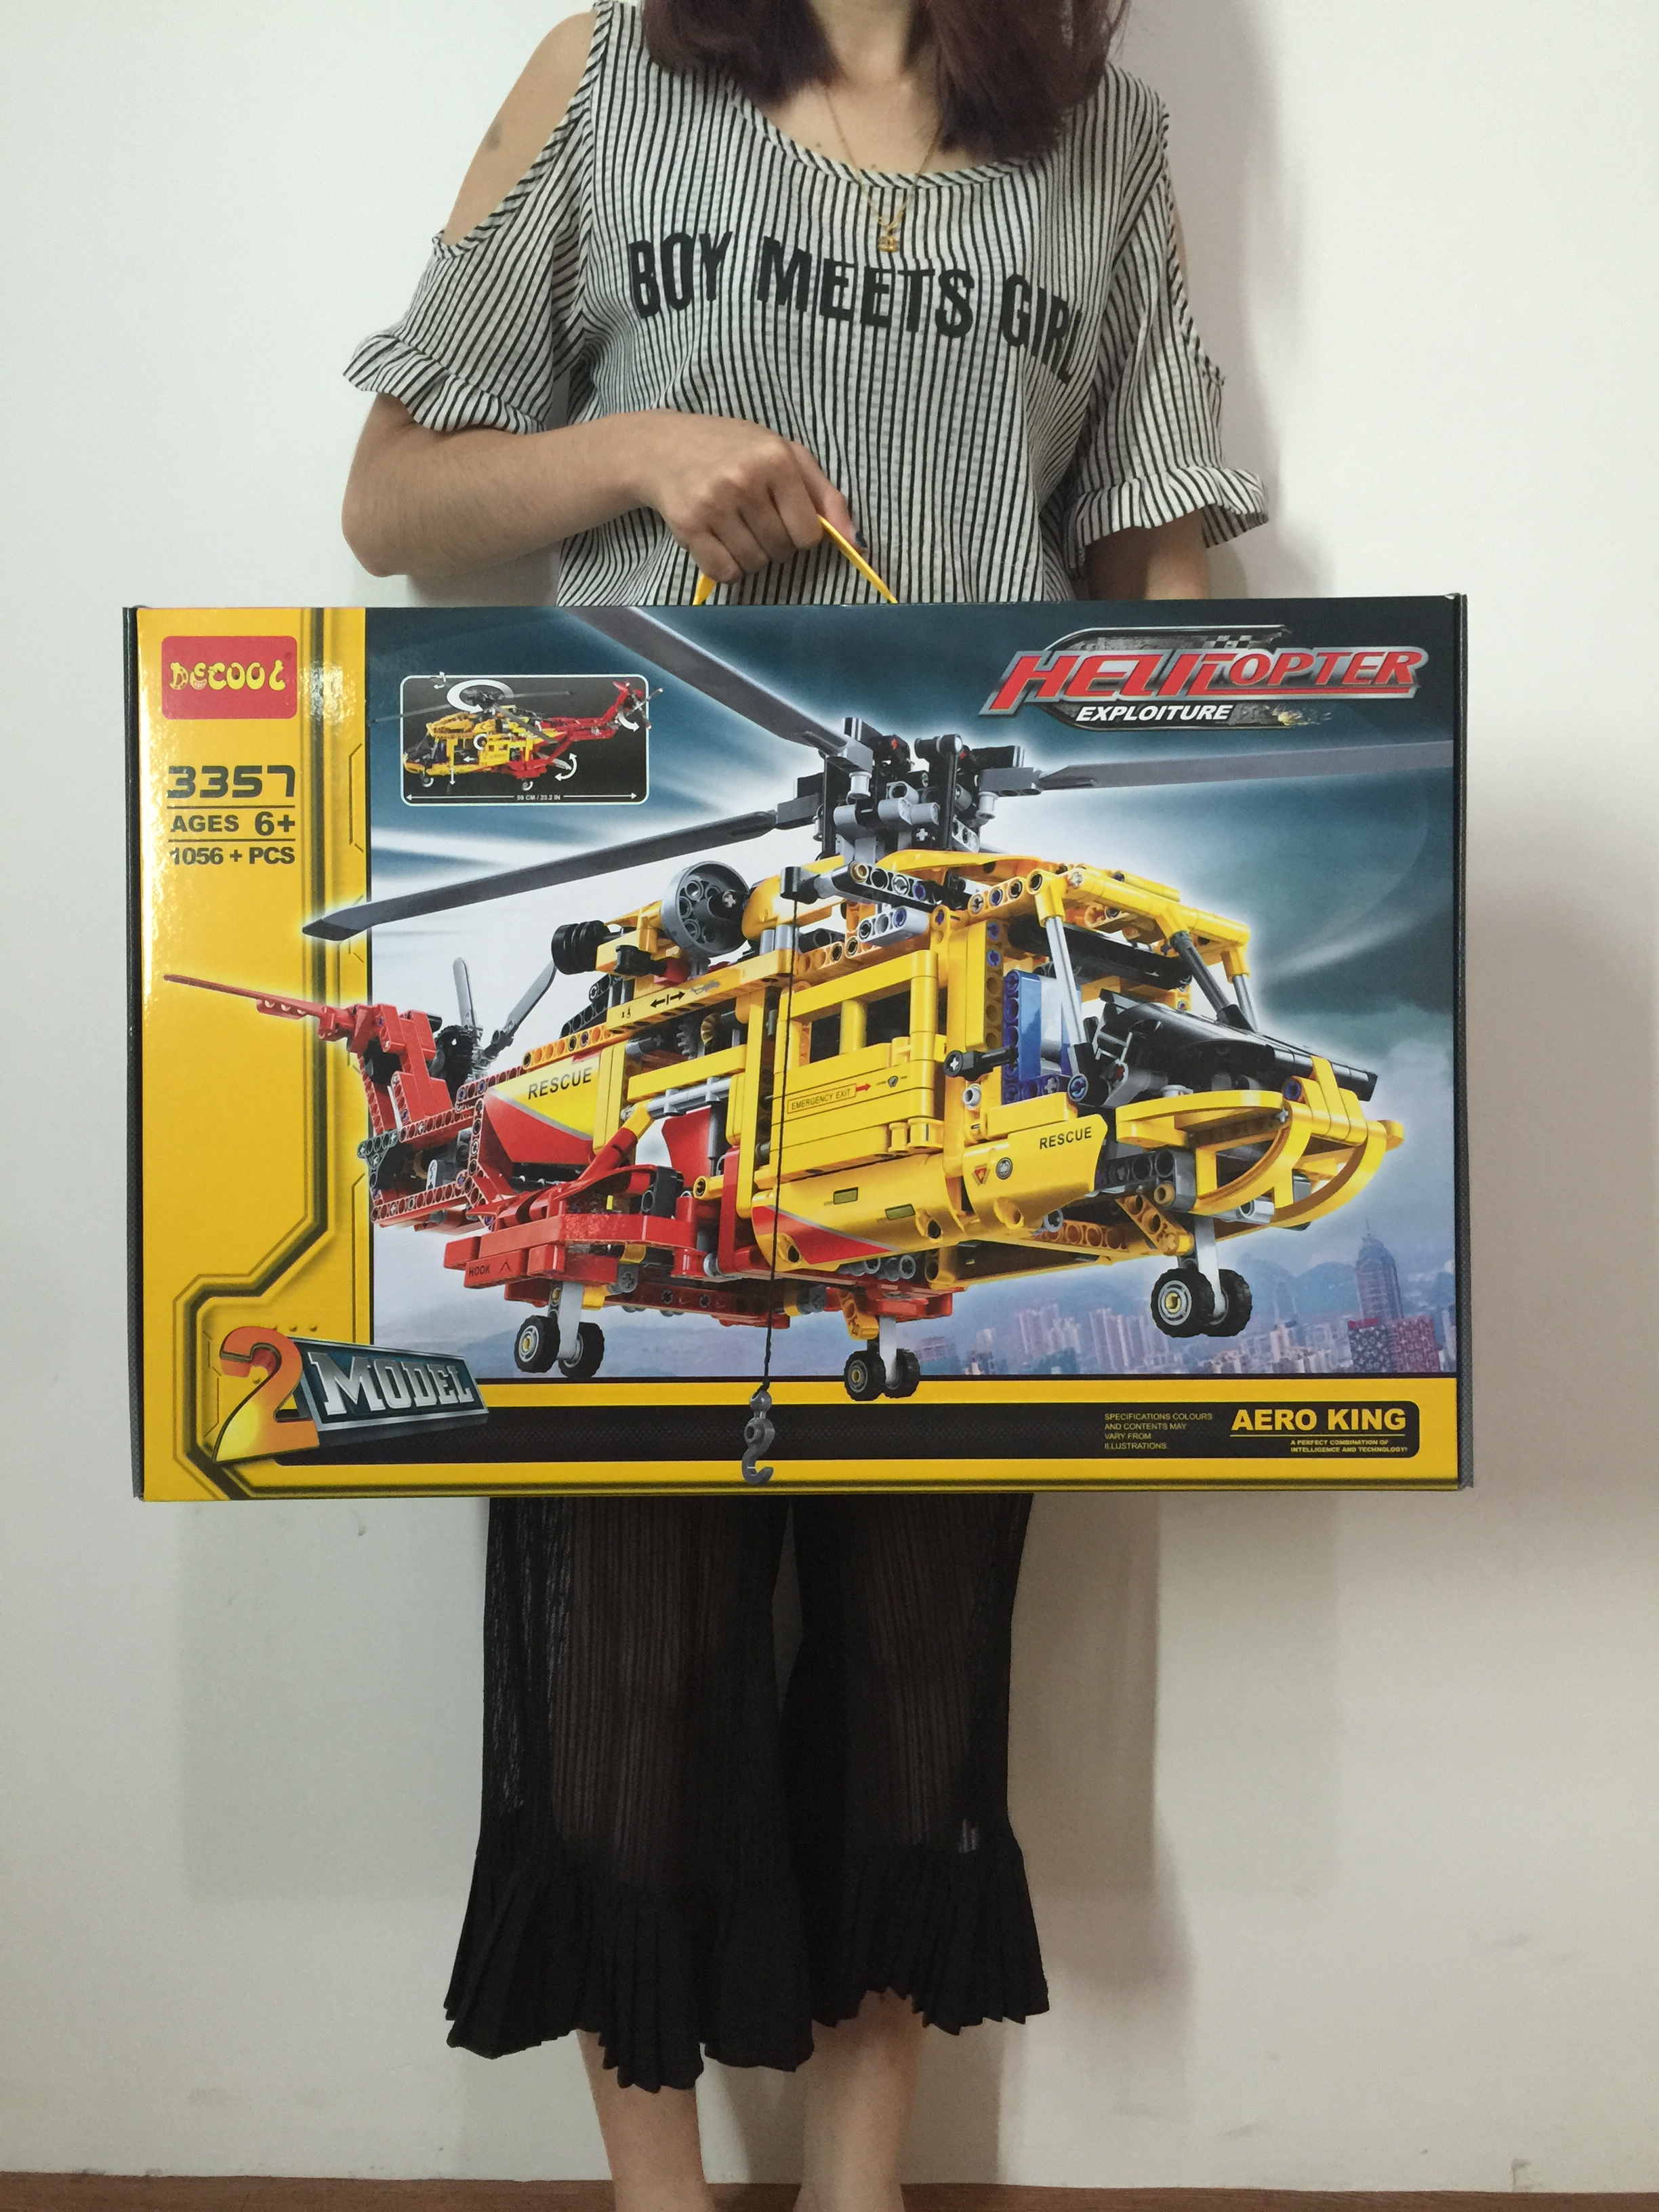 DECOOL TECHNIC 3357 Legolys Technic Military City WW2 Rescue Helicopter Plane Building Blocks Bricks Toys For Children Gift 9396